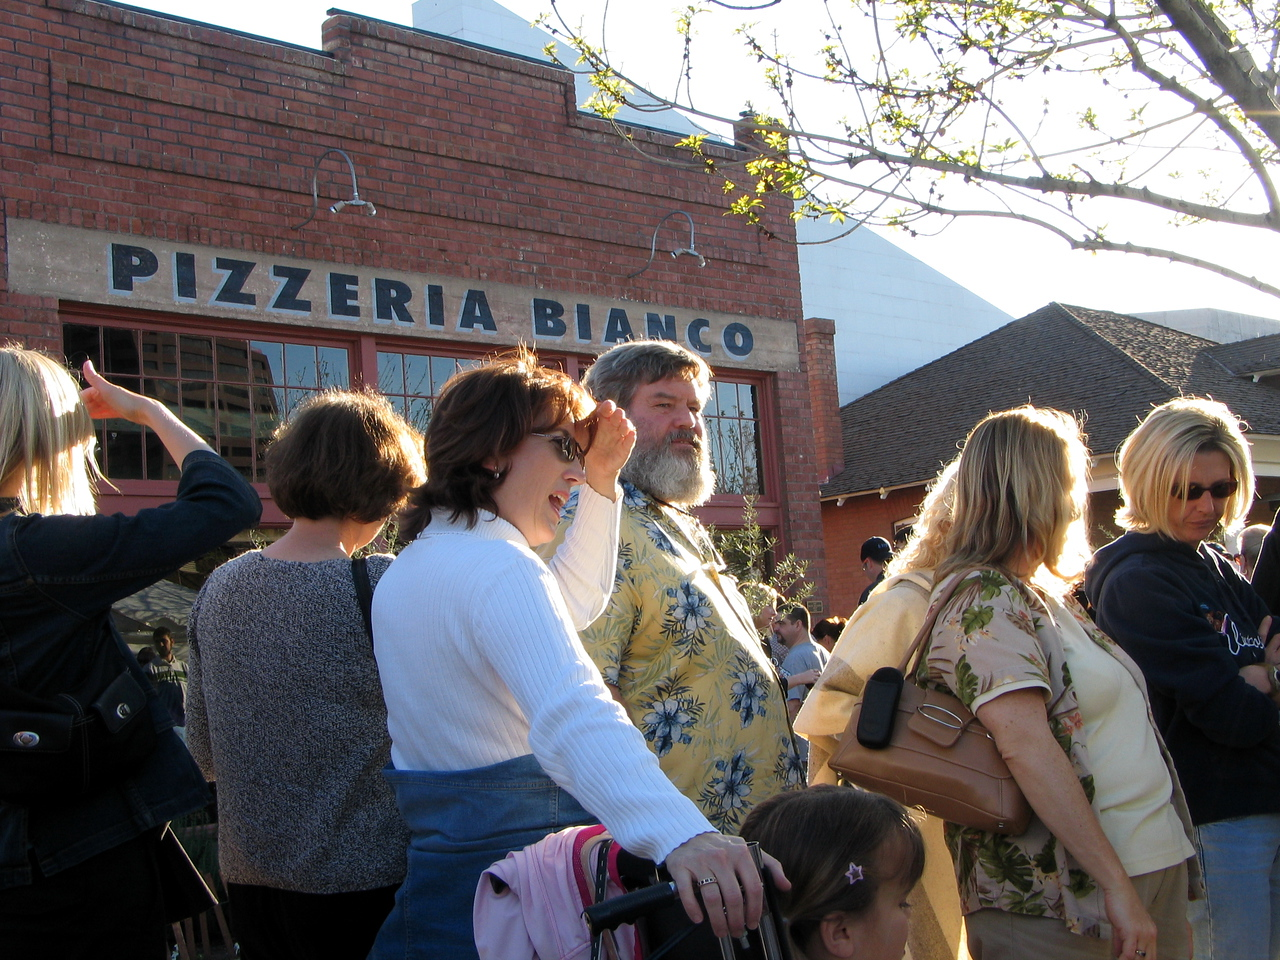 """Pizzeria Bianco (Heritage Square, downtown Phx) - February 2005: Believe or not, it is rated the best pizze in the U.S. (Reference: <a href=""""http://www.azcentral.com/ent/dining/articles/0214pizza14-CP.html"""">http://www.azcentral.com/ent/dining/articles/0214pizza14-CP.html</a>).  At  least 50 people waiting for the pizzeria to open at 5 p.m."""